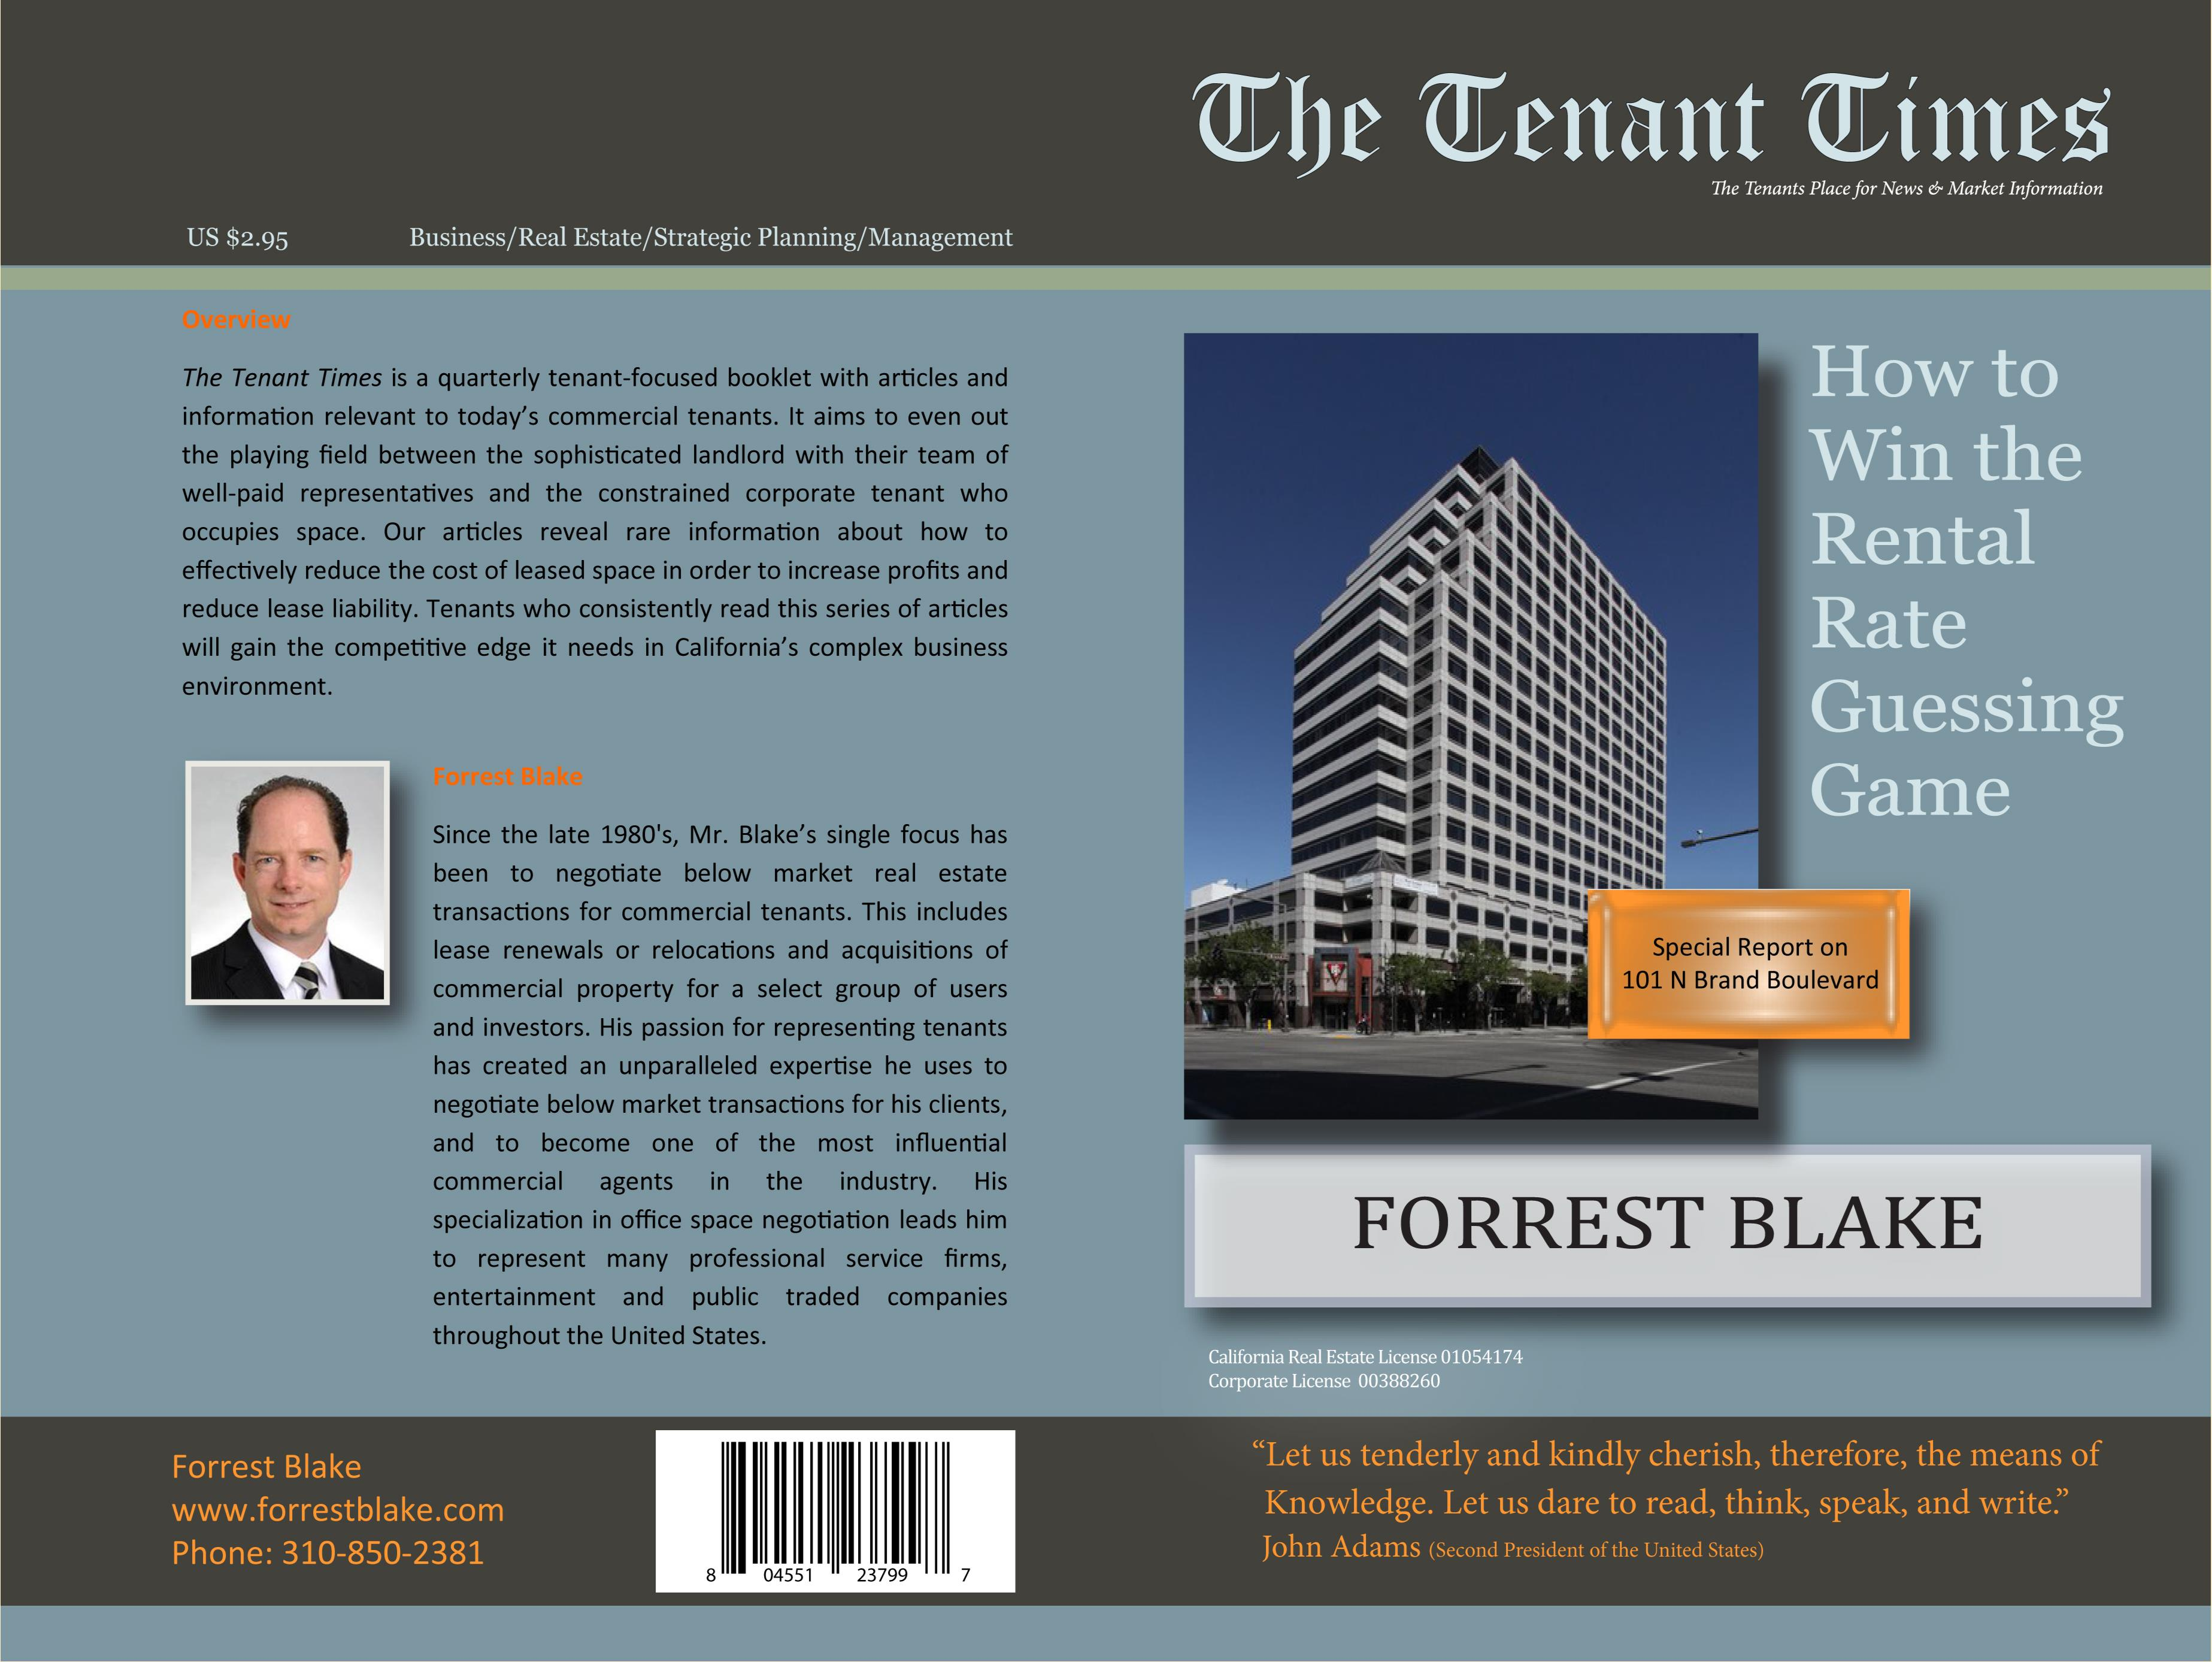 2Q Tenant Times 101 N Brand cover image